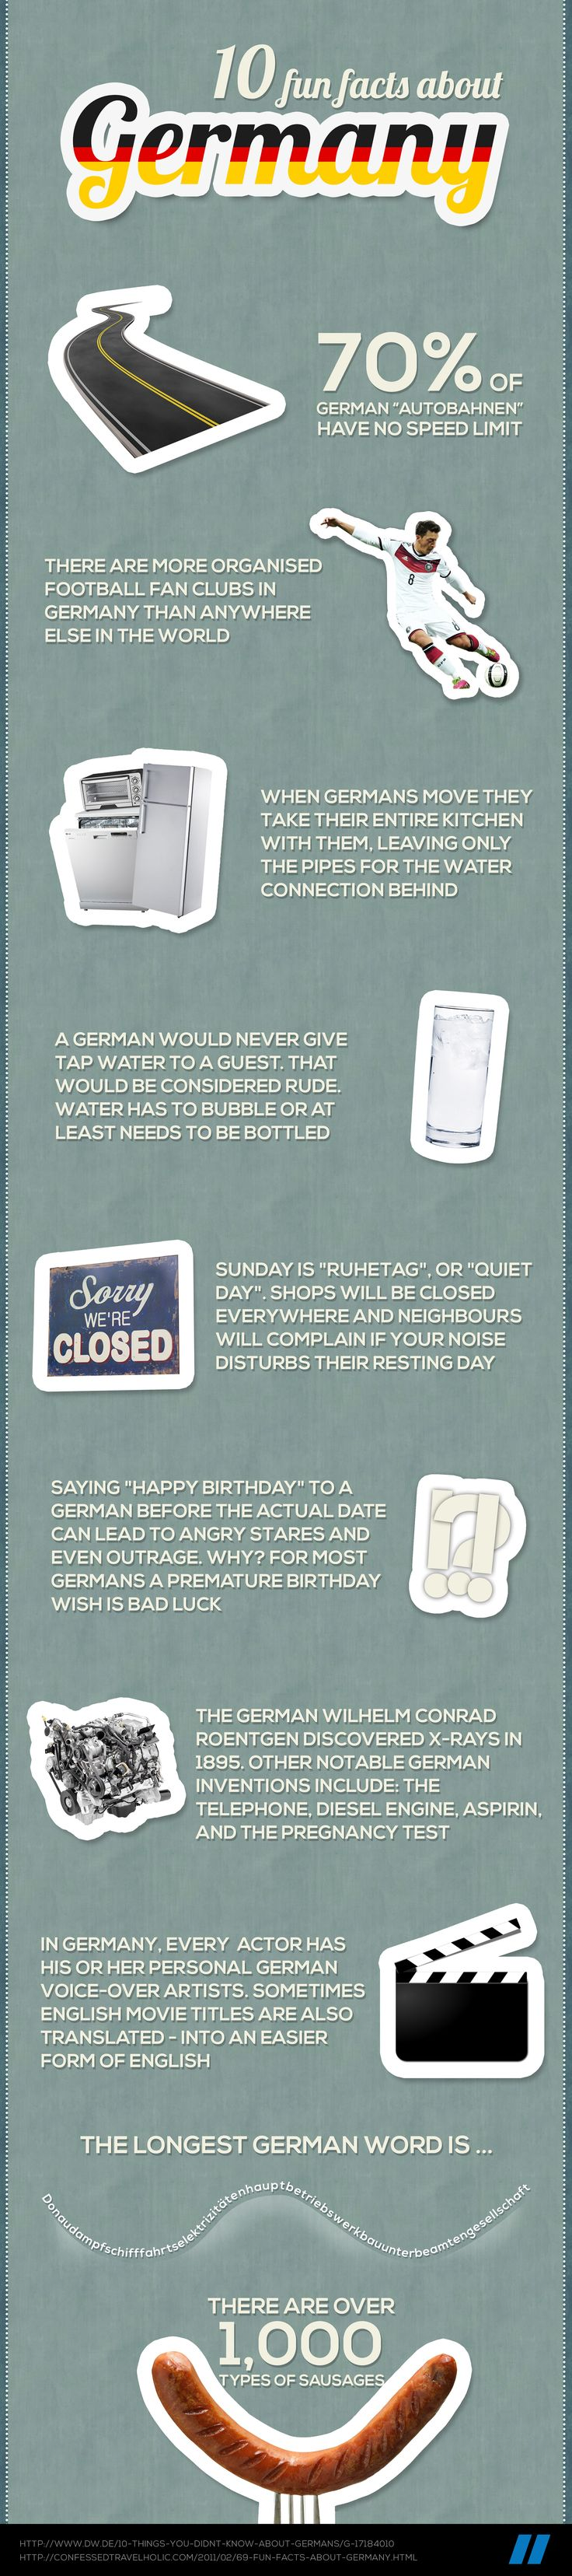 10 fun facts about Germany